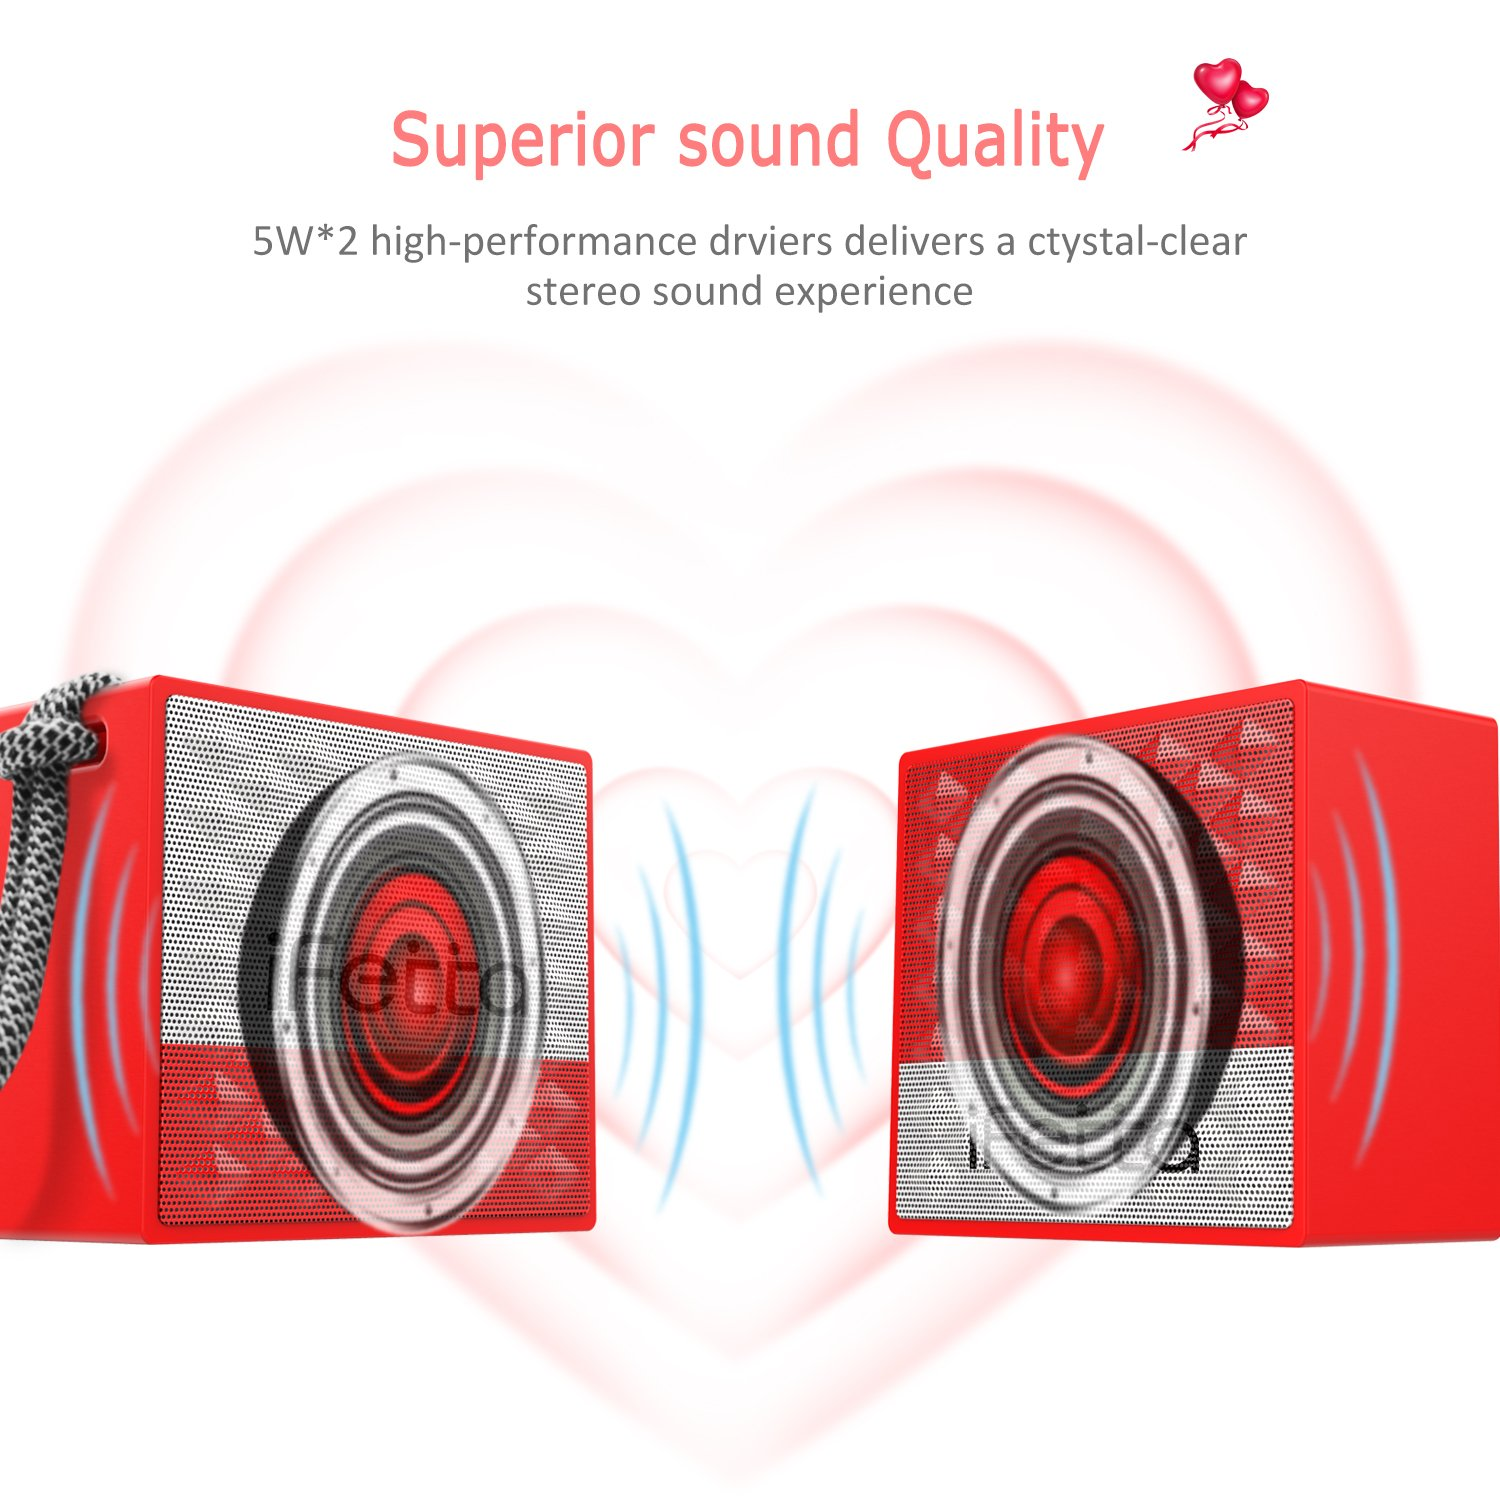 Portable Wireless Bluetooth Speaker, Ifecco True Wireless Stereo Couple Speakers IPX7 Waterproof Speaker Built in Mic for Beach, Shower & Home Best as Valentine Gifts (TWS Lover Speaker)